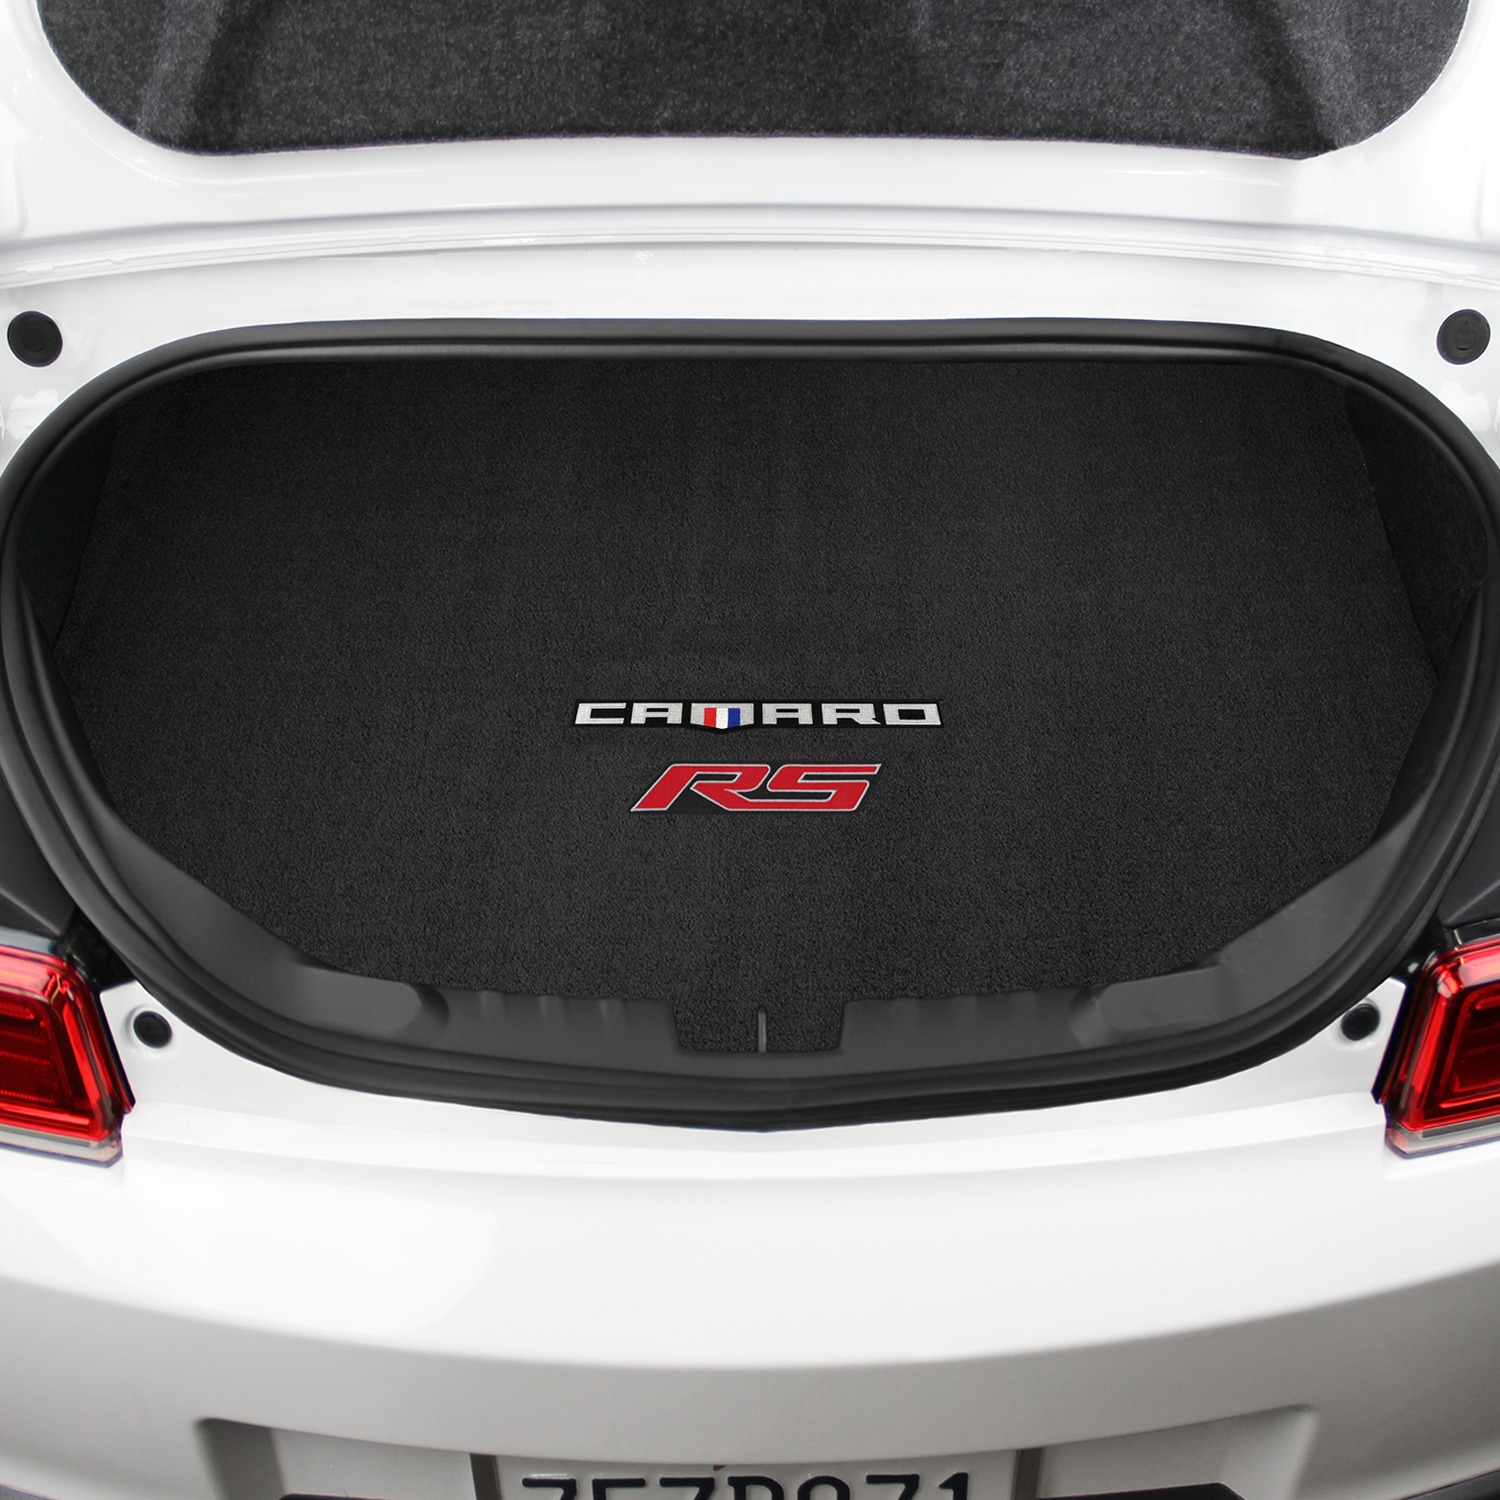 2016-2019 Camaro 6th Generation Lloyd Trunk Cargo Mat CAMARO RS Logos